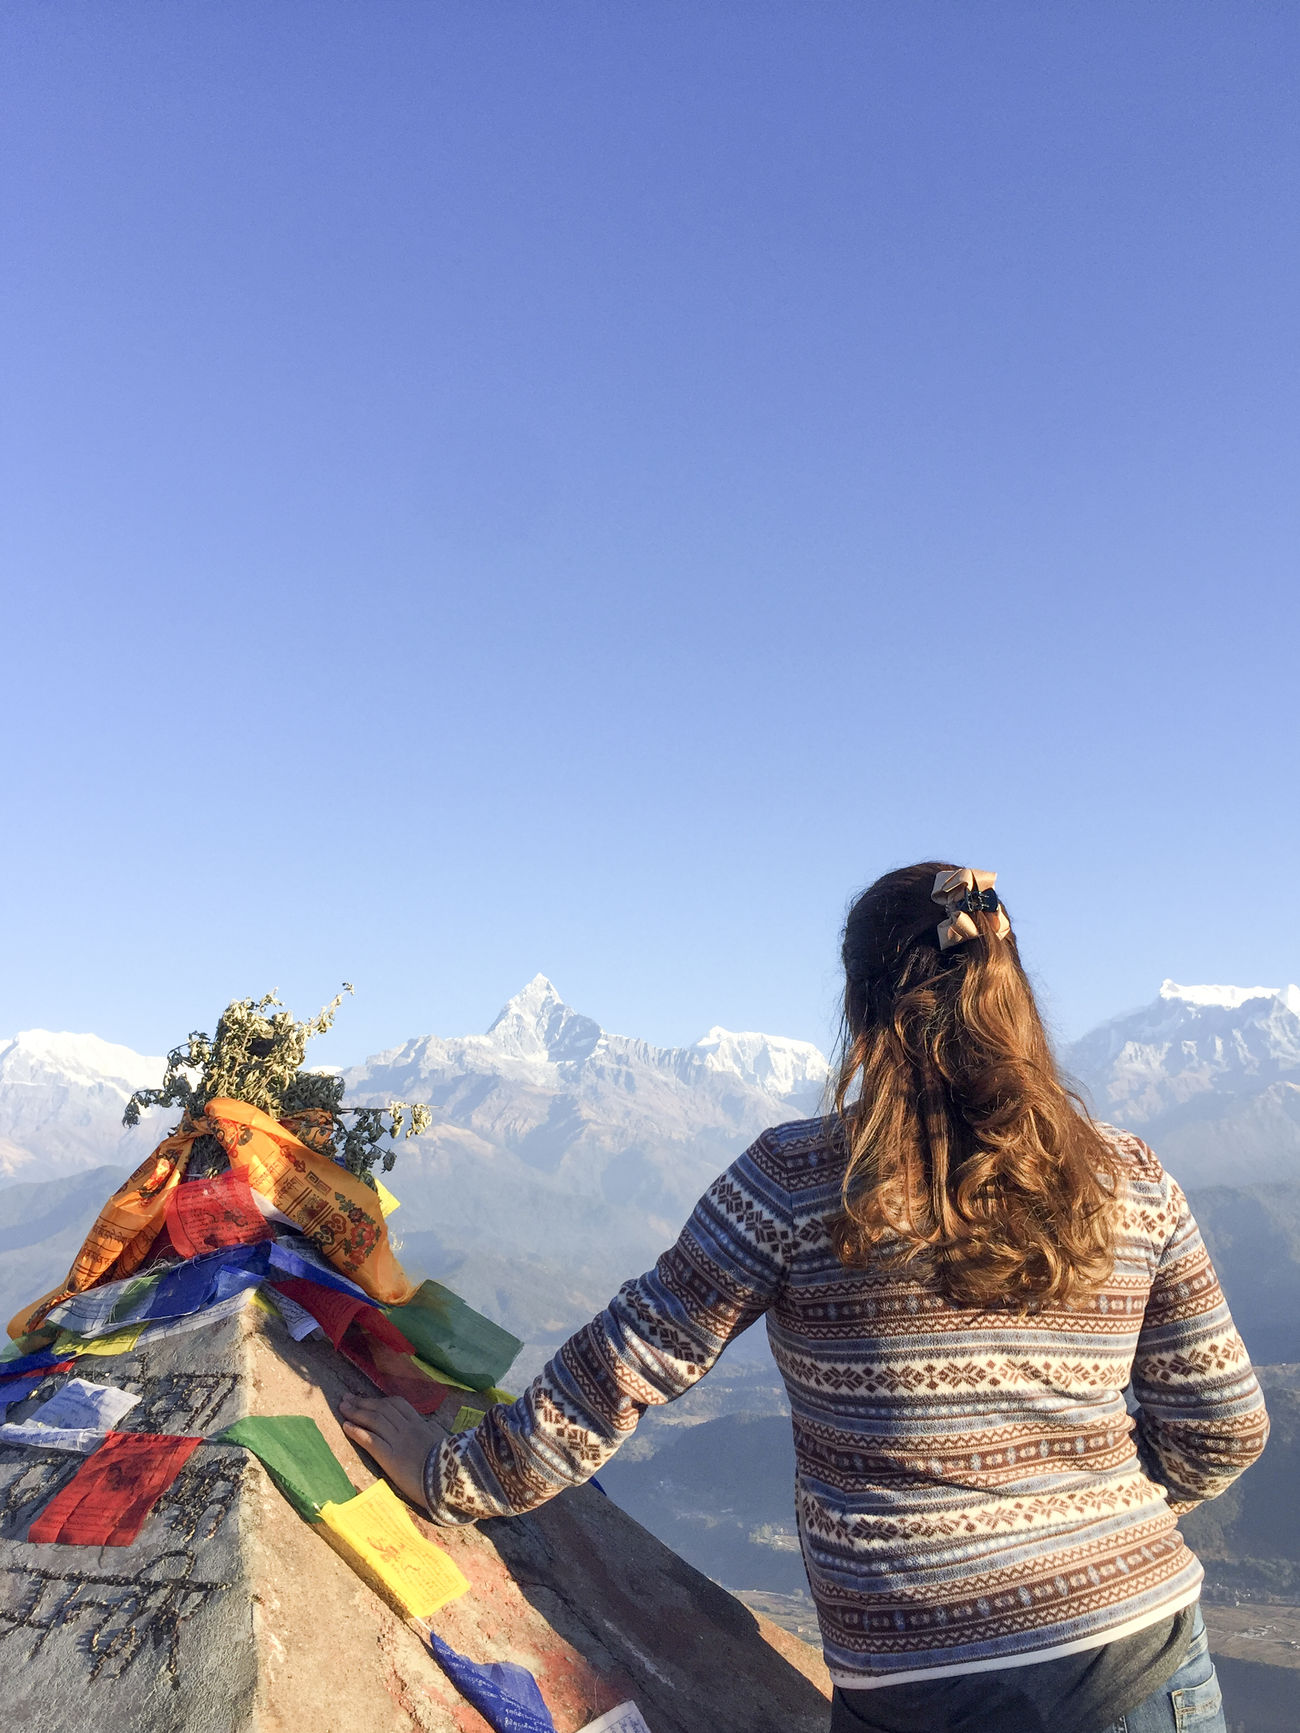 Beautiful stock photos of annapurna, clear sky, traditional clothing, outdoors, day